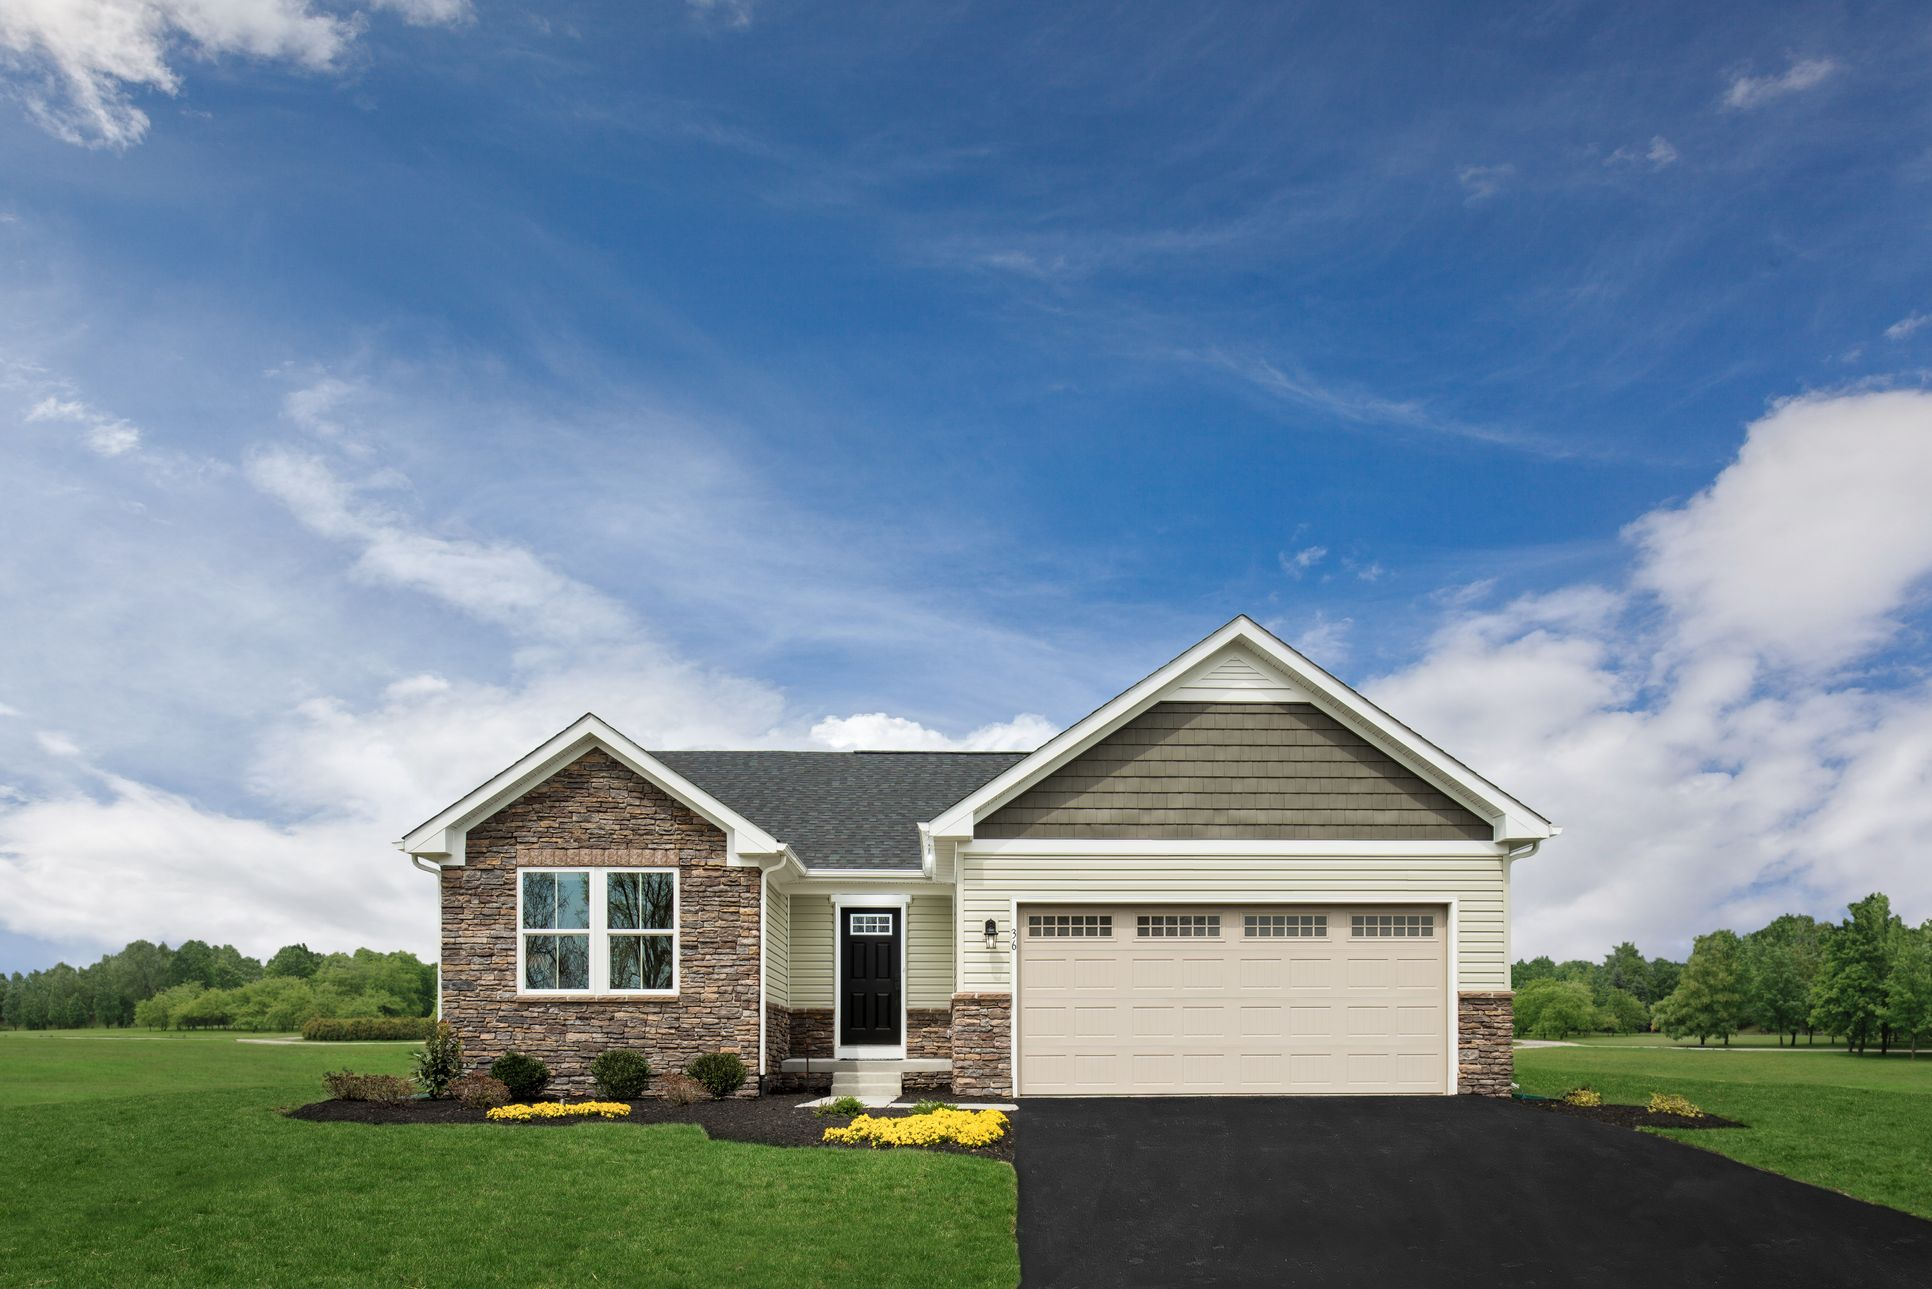 WELCOME TO VERONA WOODS 55+:Lowest-priced 55+ new ranch homes with private yards backing to open space, convenient to Route 1, shopping and dining.Schedule your appointment today!